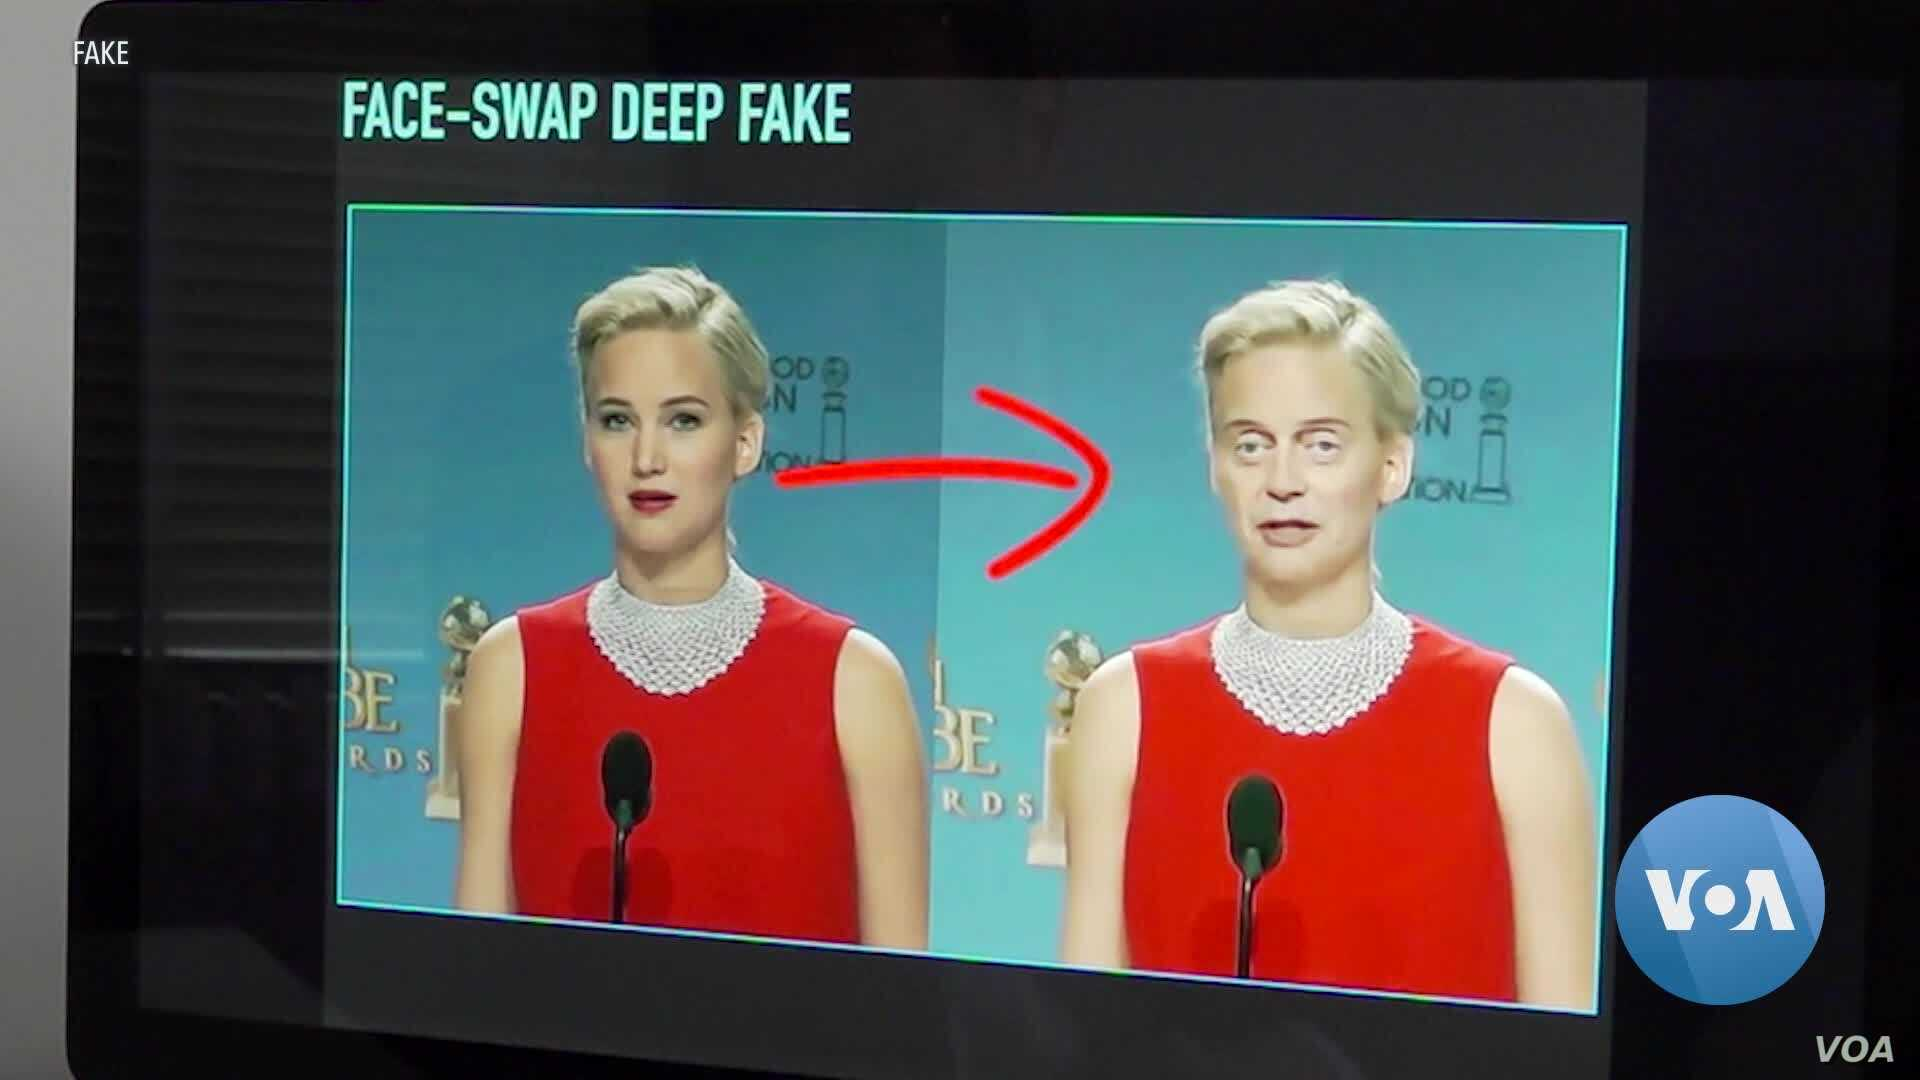 Deepfakes: Silicon Valley Prepares to Battle Latest Election Threat